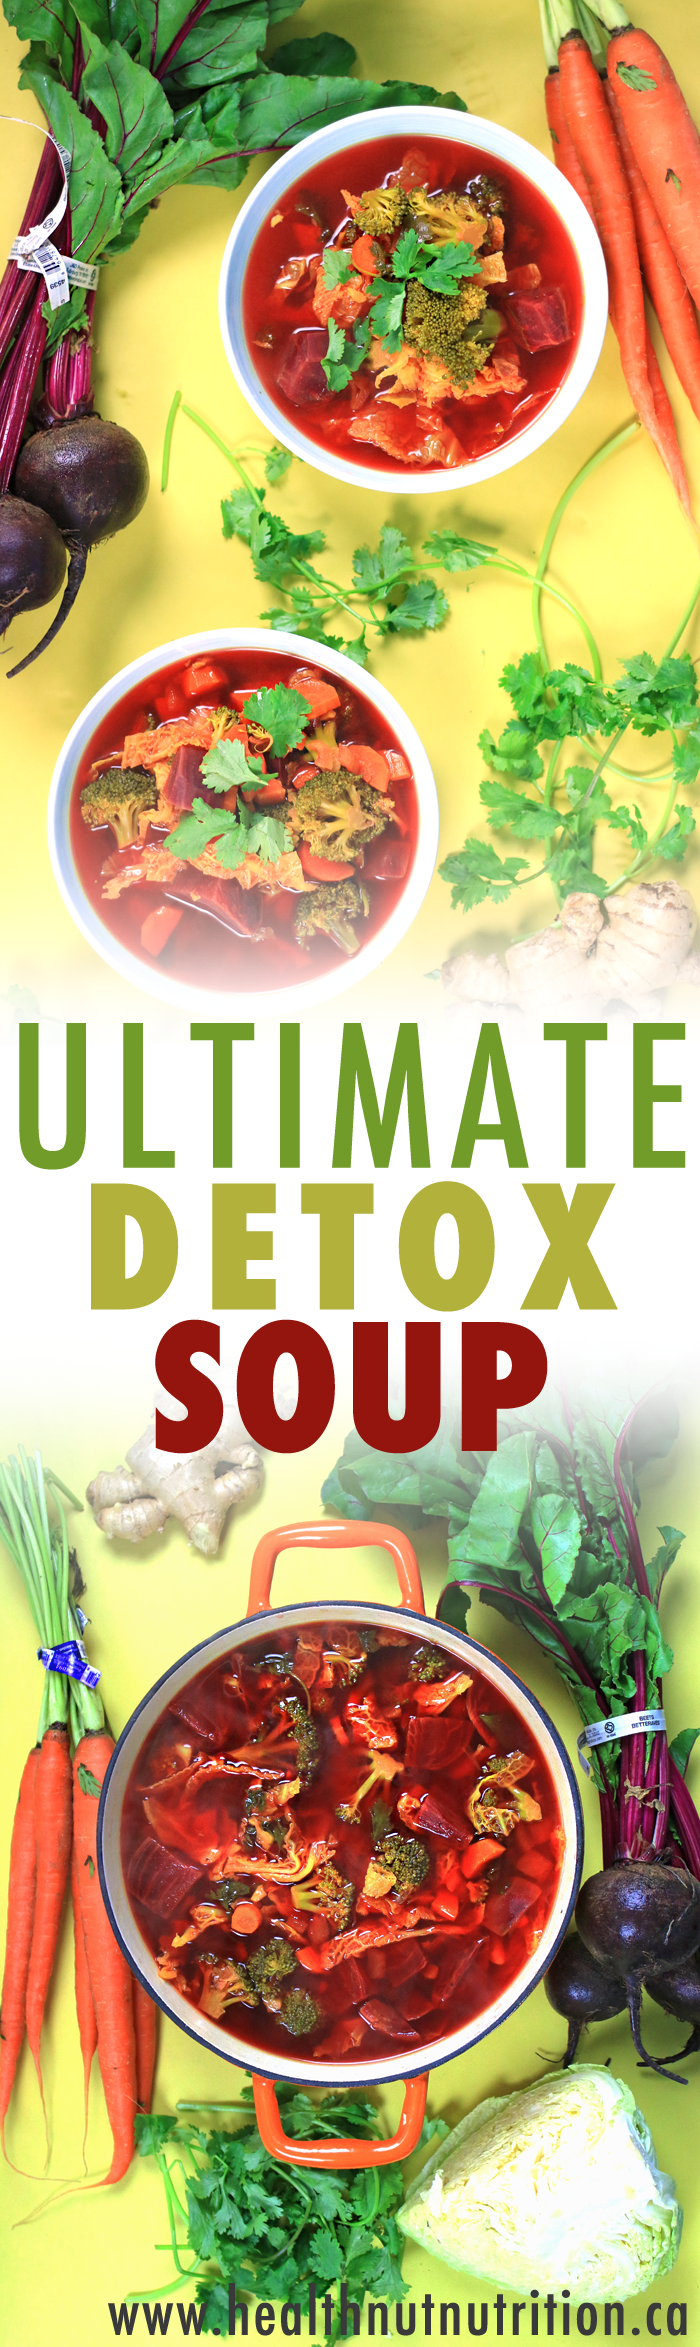 The ULTIMATE DETOX SOUP | Vegan & GF